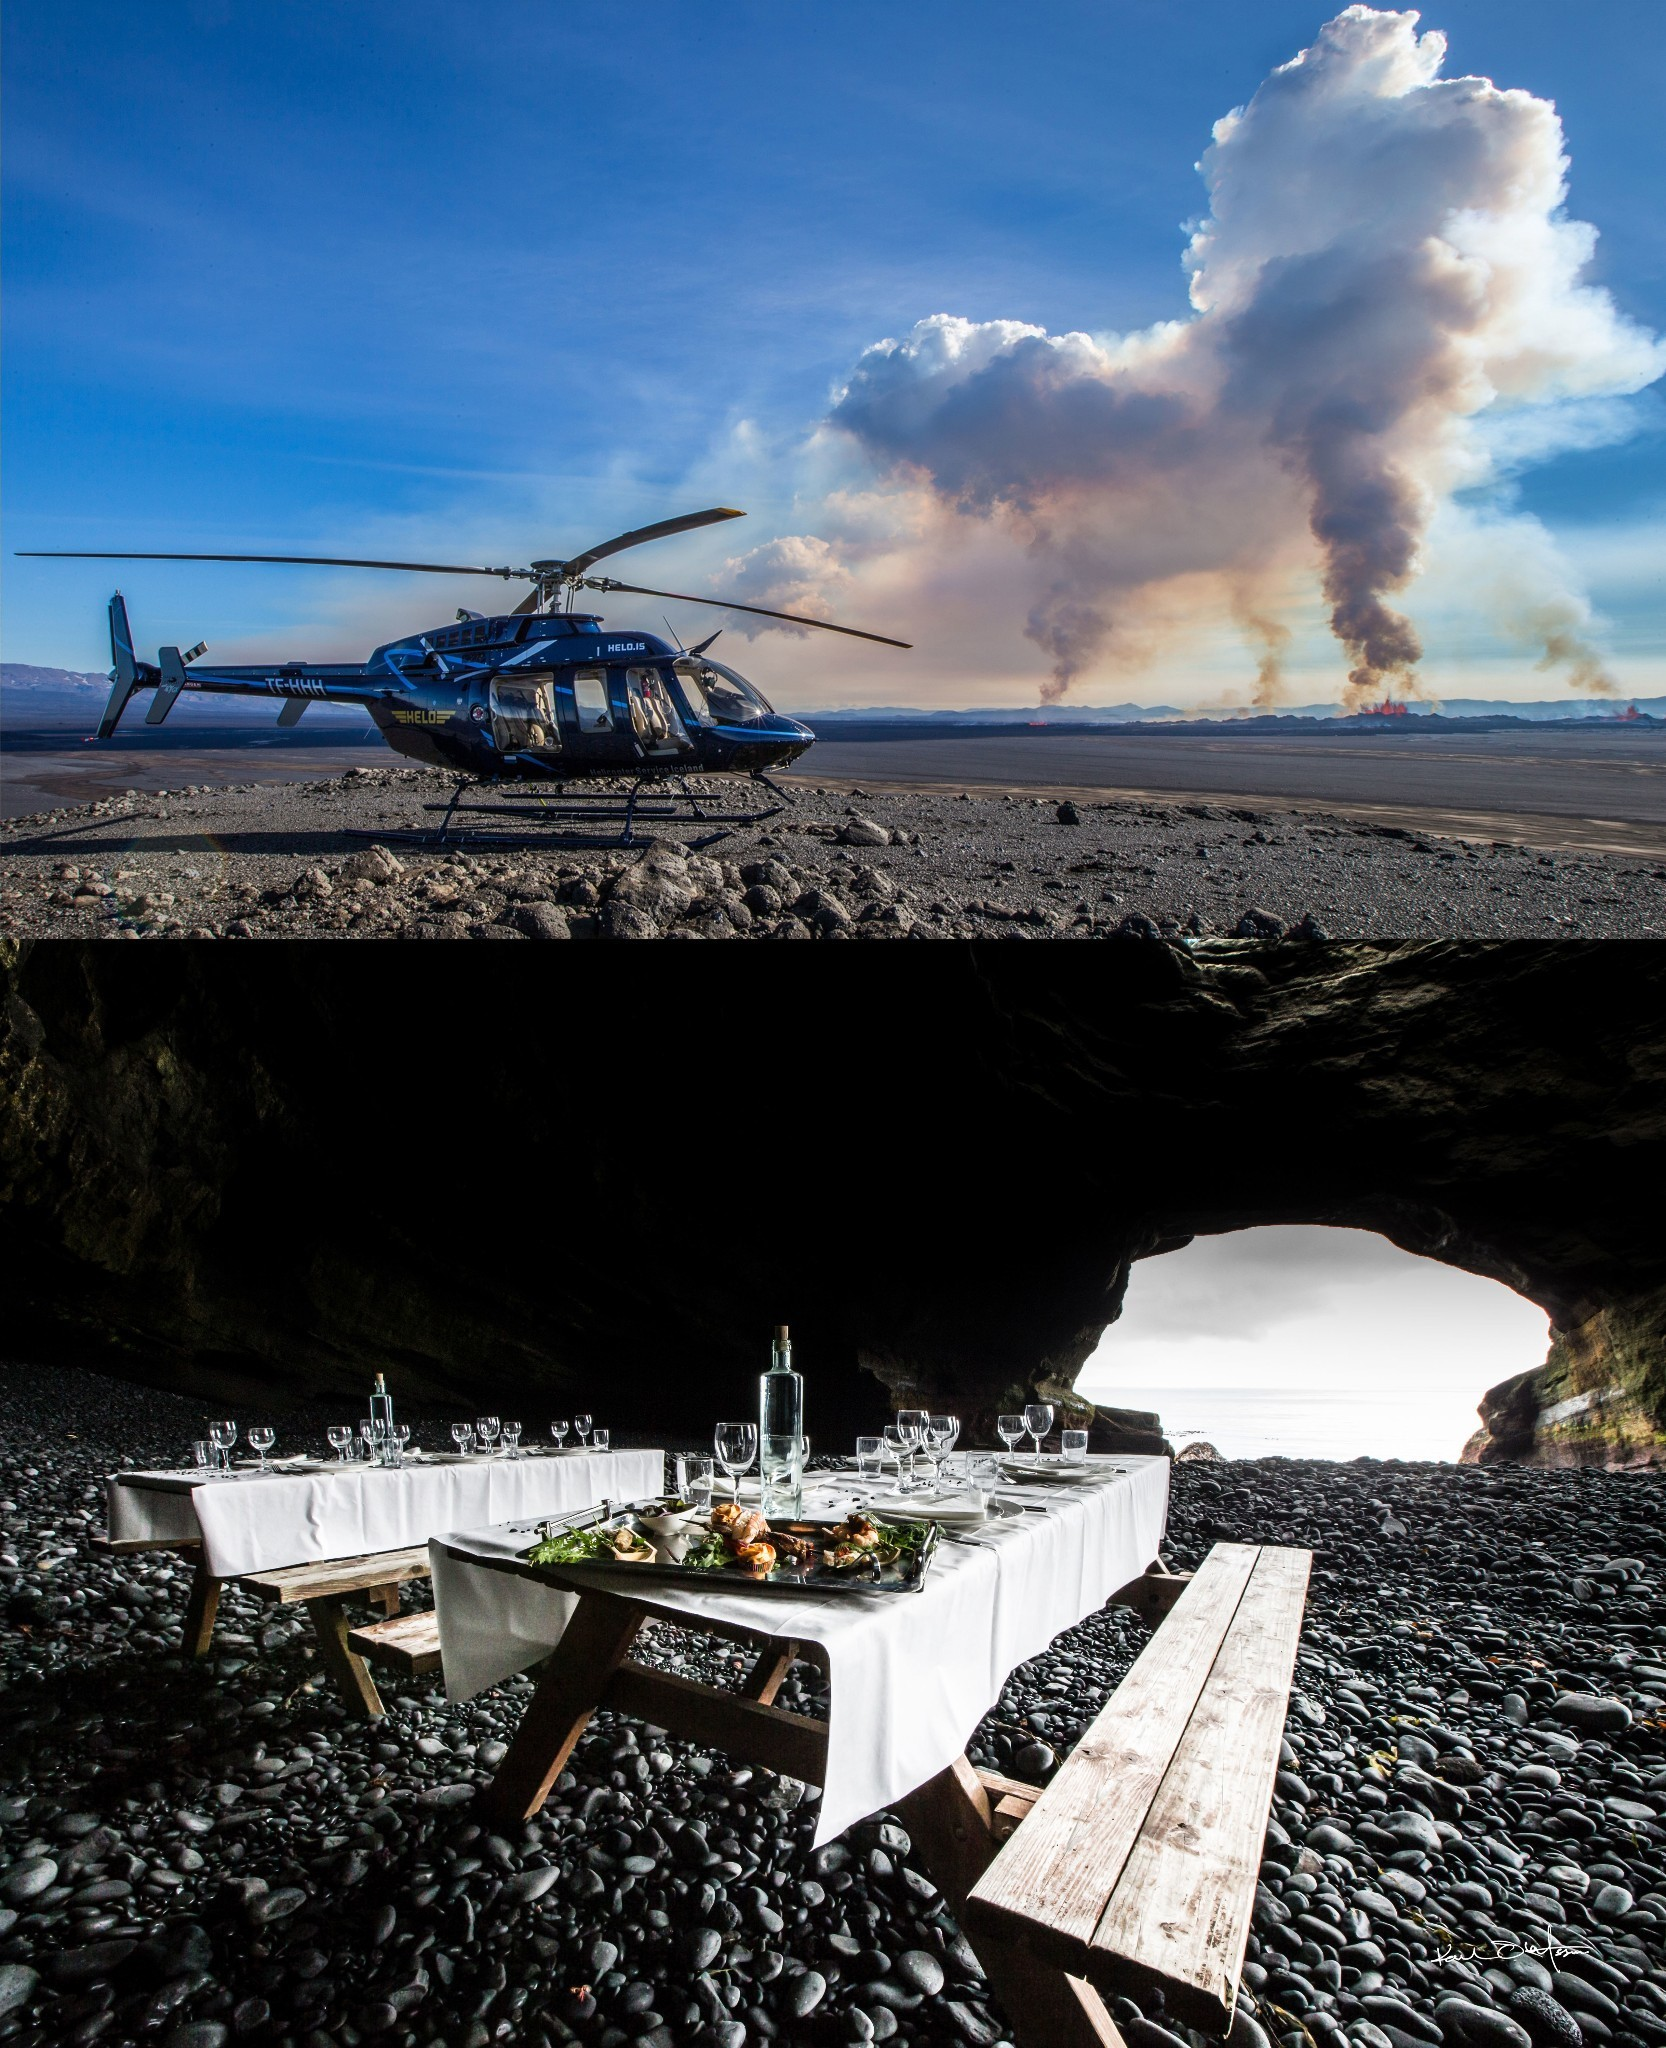 Dinner In a Volcano and Other Daring Summer Activities